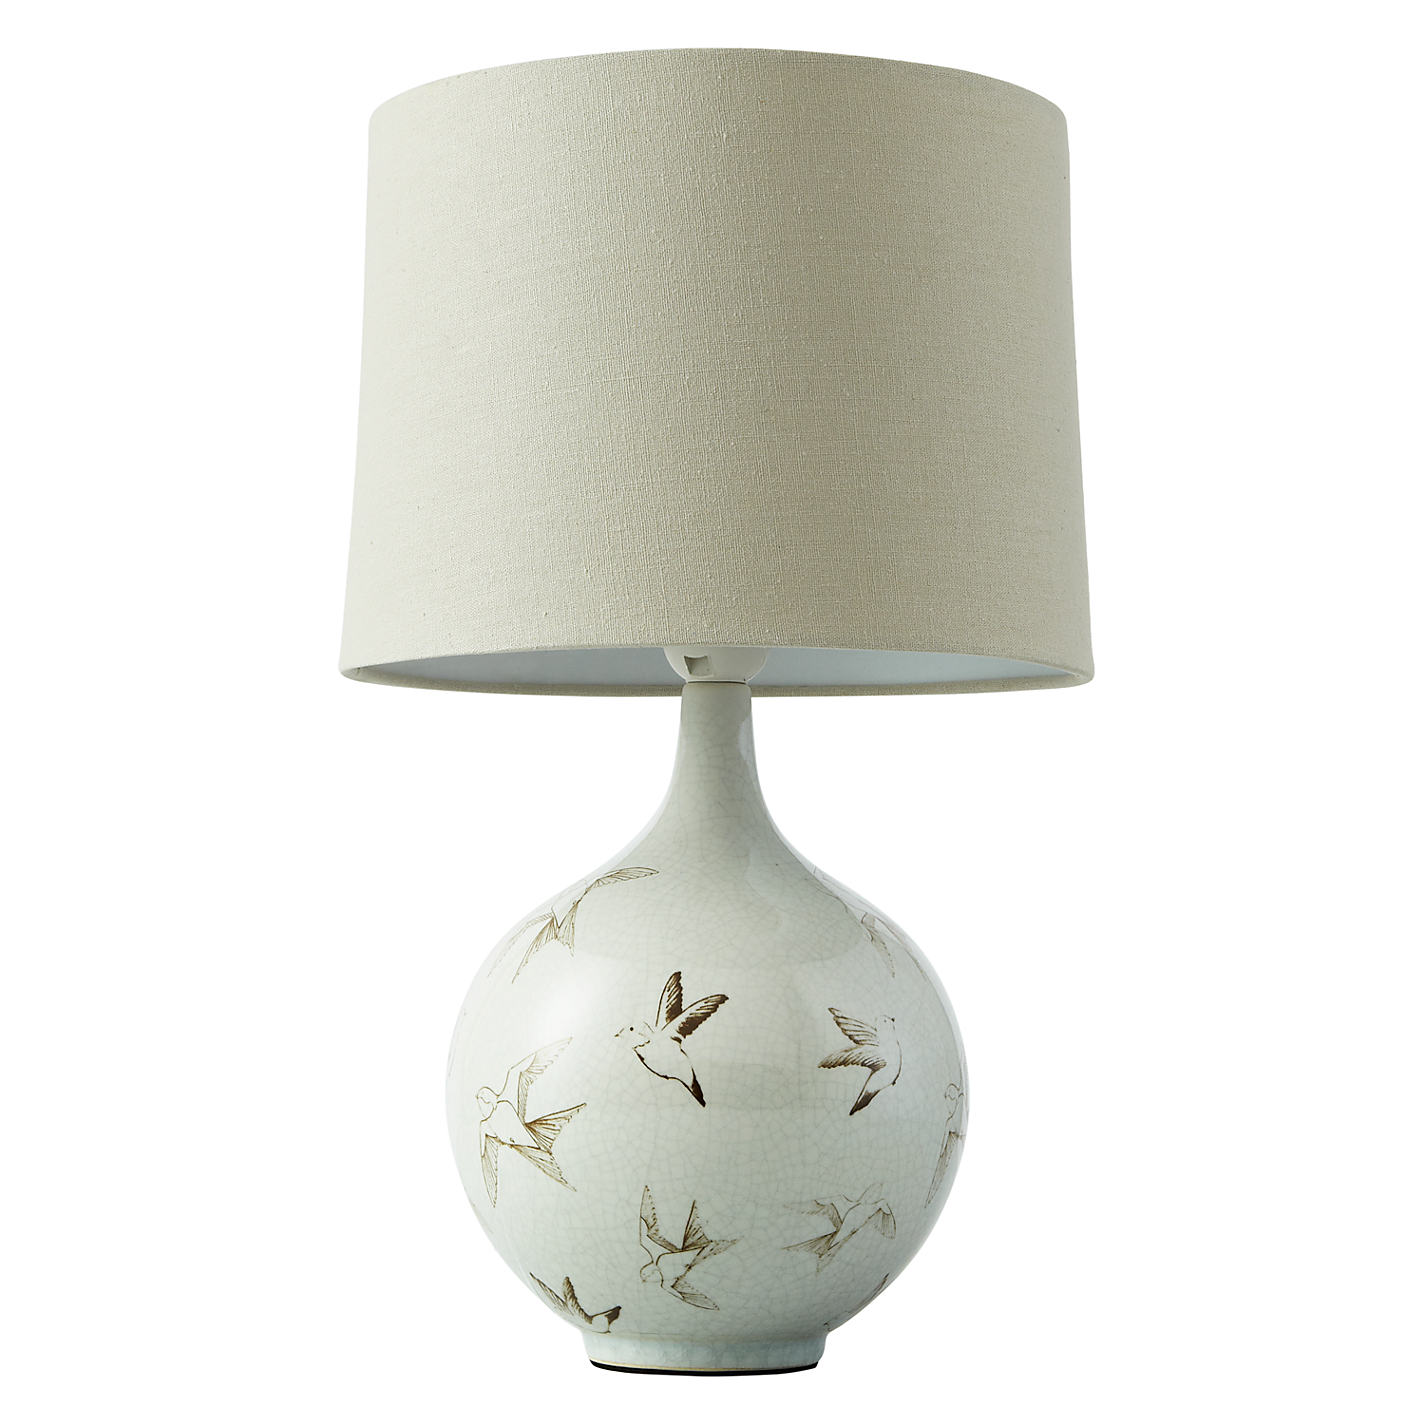 Bird table lamp 10 types of lamp gaining attraction in interior design warisan lighting - Table lamp types ...